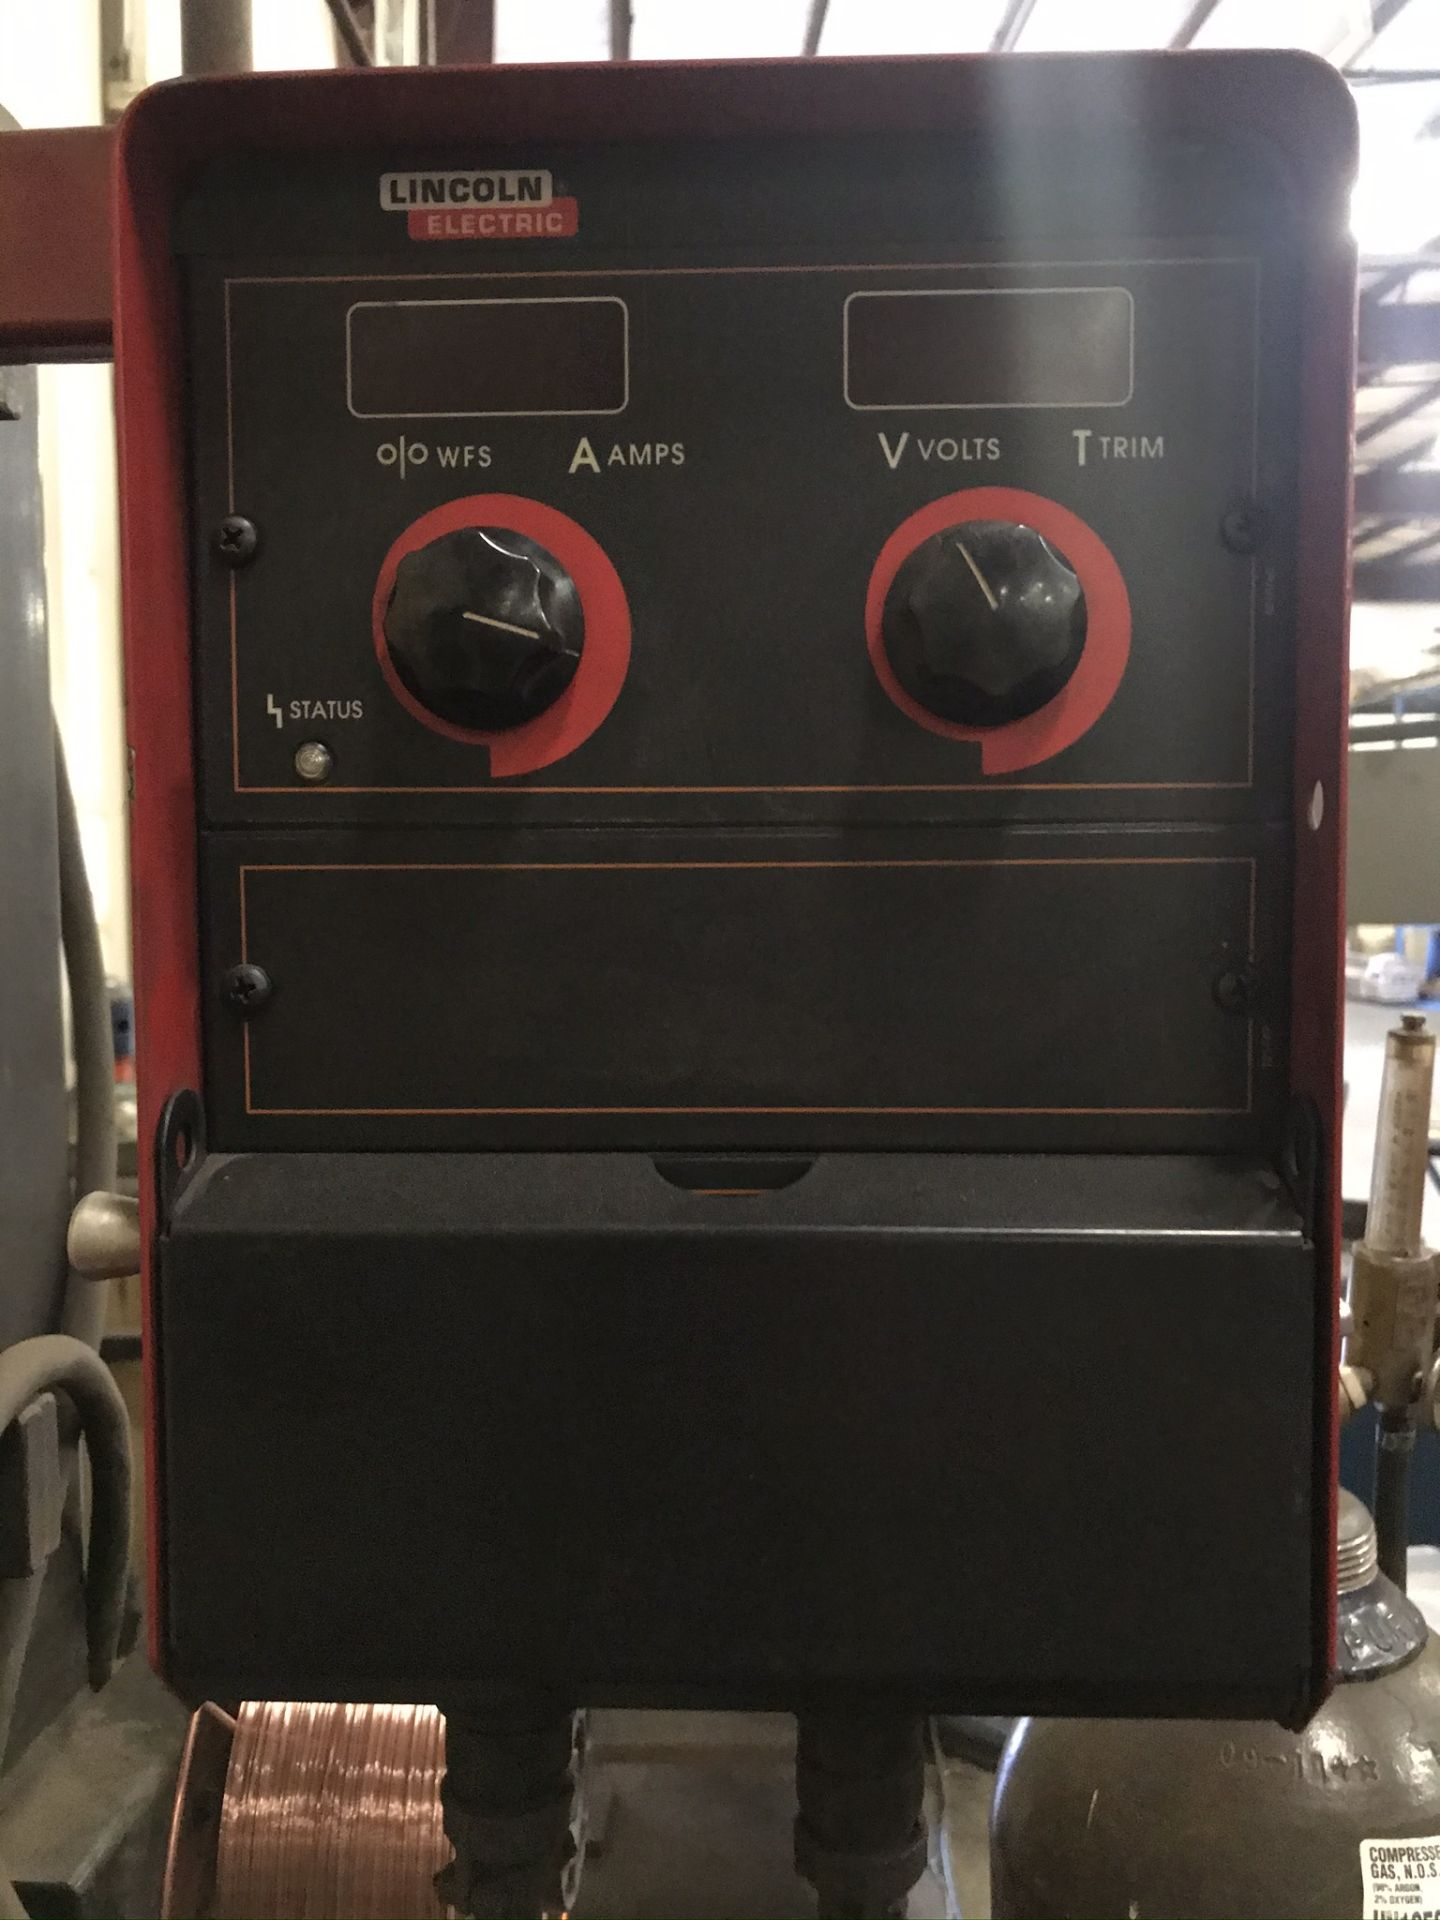 Lincoln Power Wave 455 Welder Complete with Welding Boom Arm and Lincoln Power Feed - Image 4 of 7